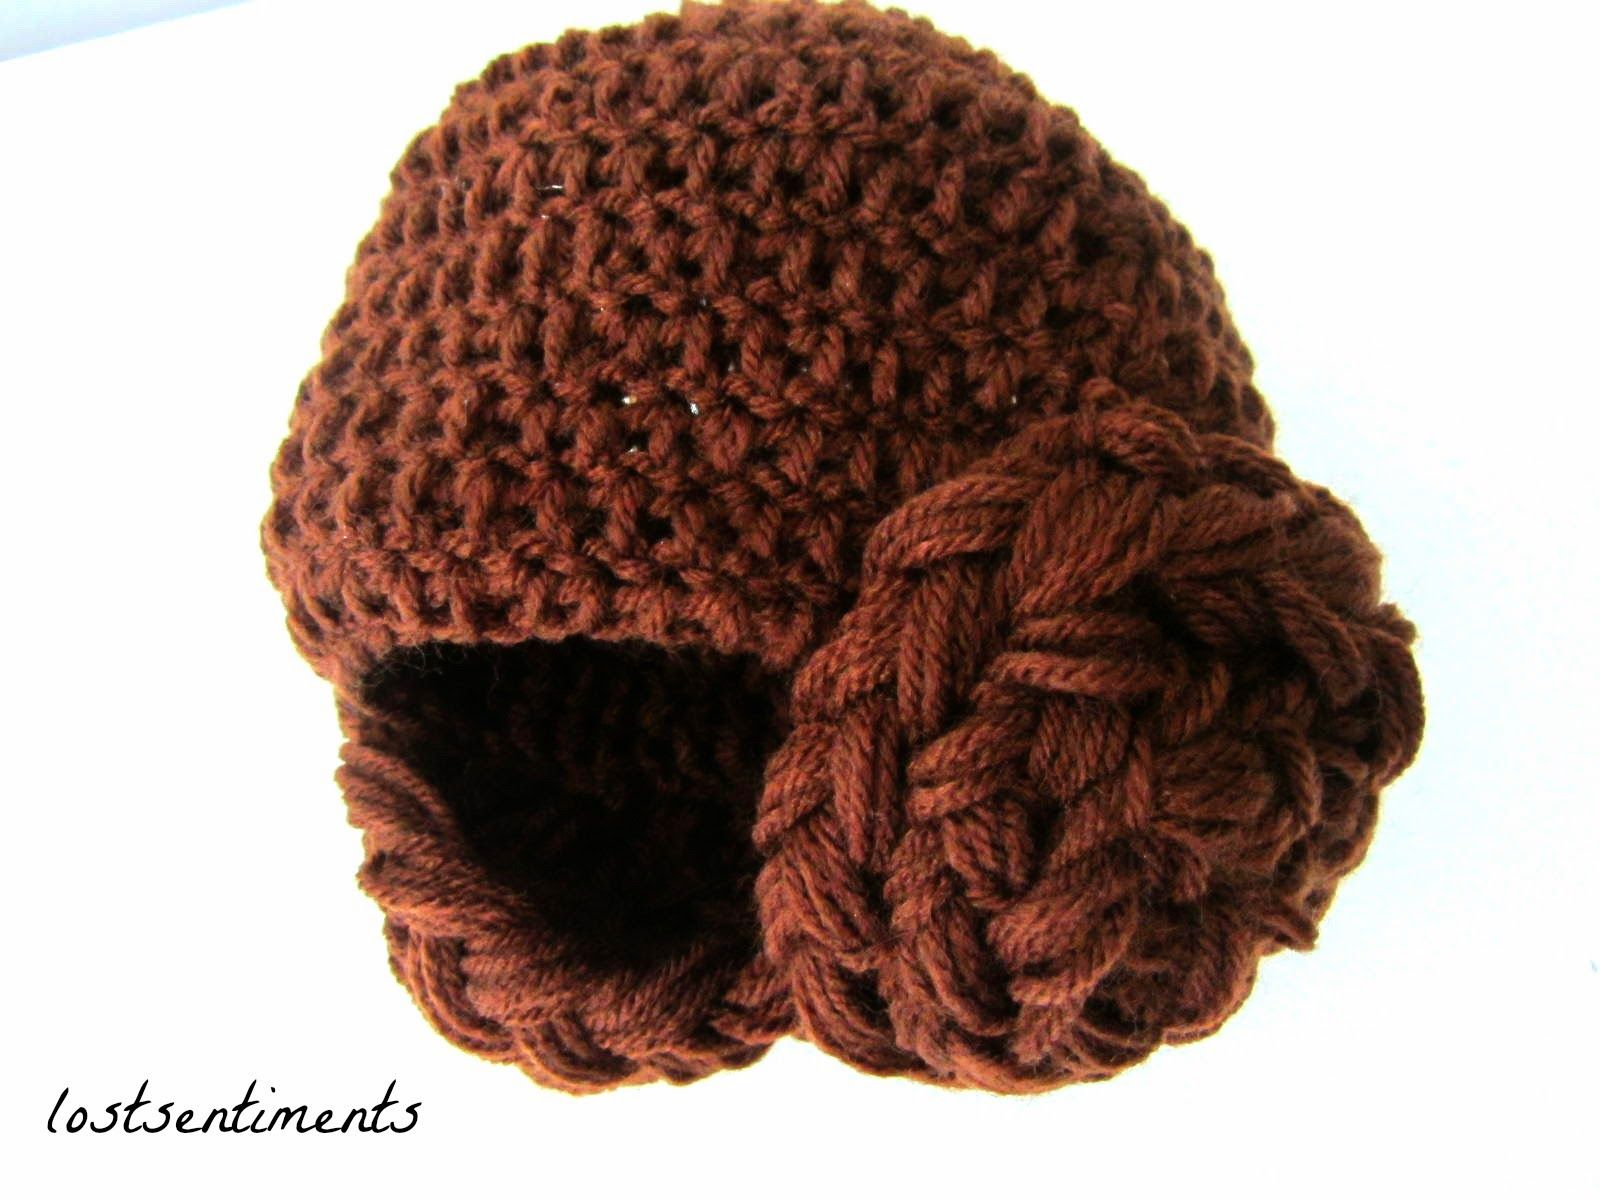 Princess Leia Crocheted Hat for 3 - 6 Month Old #starwars #FOTH ...